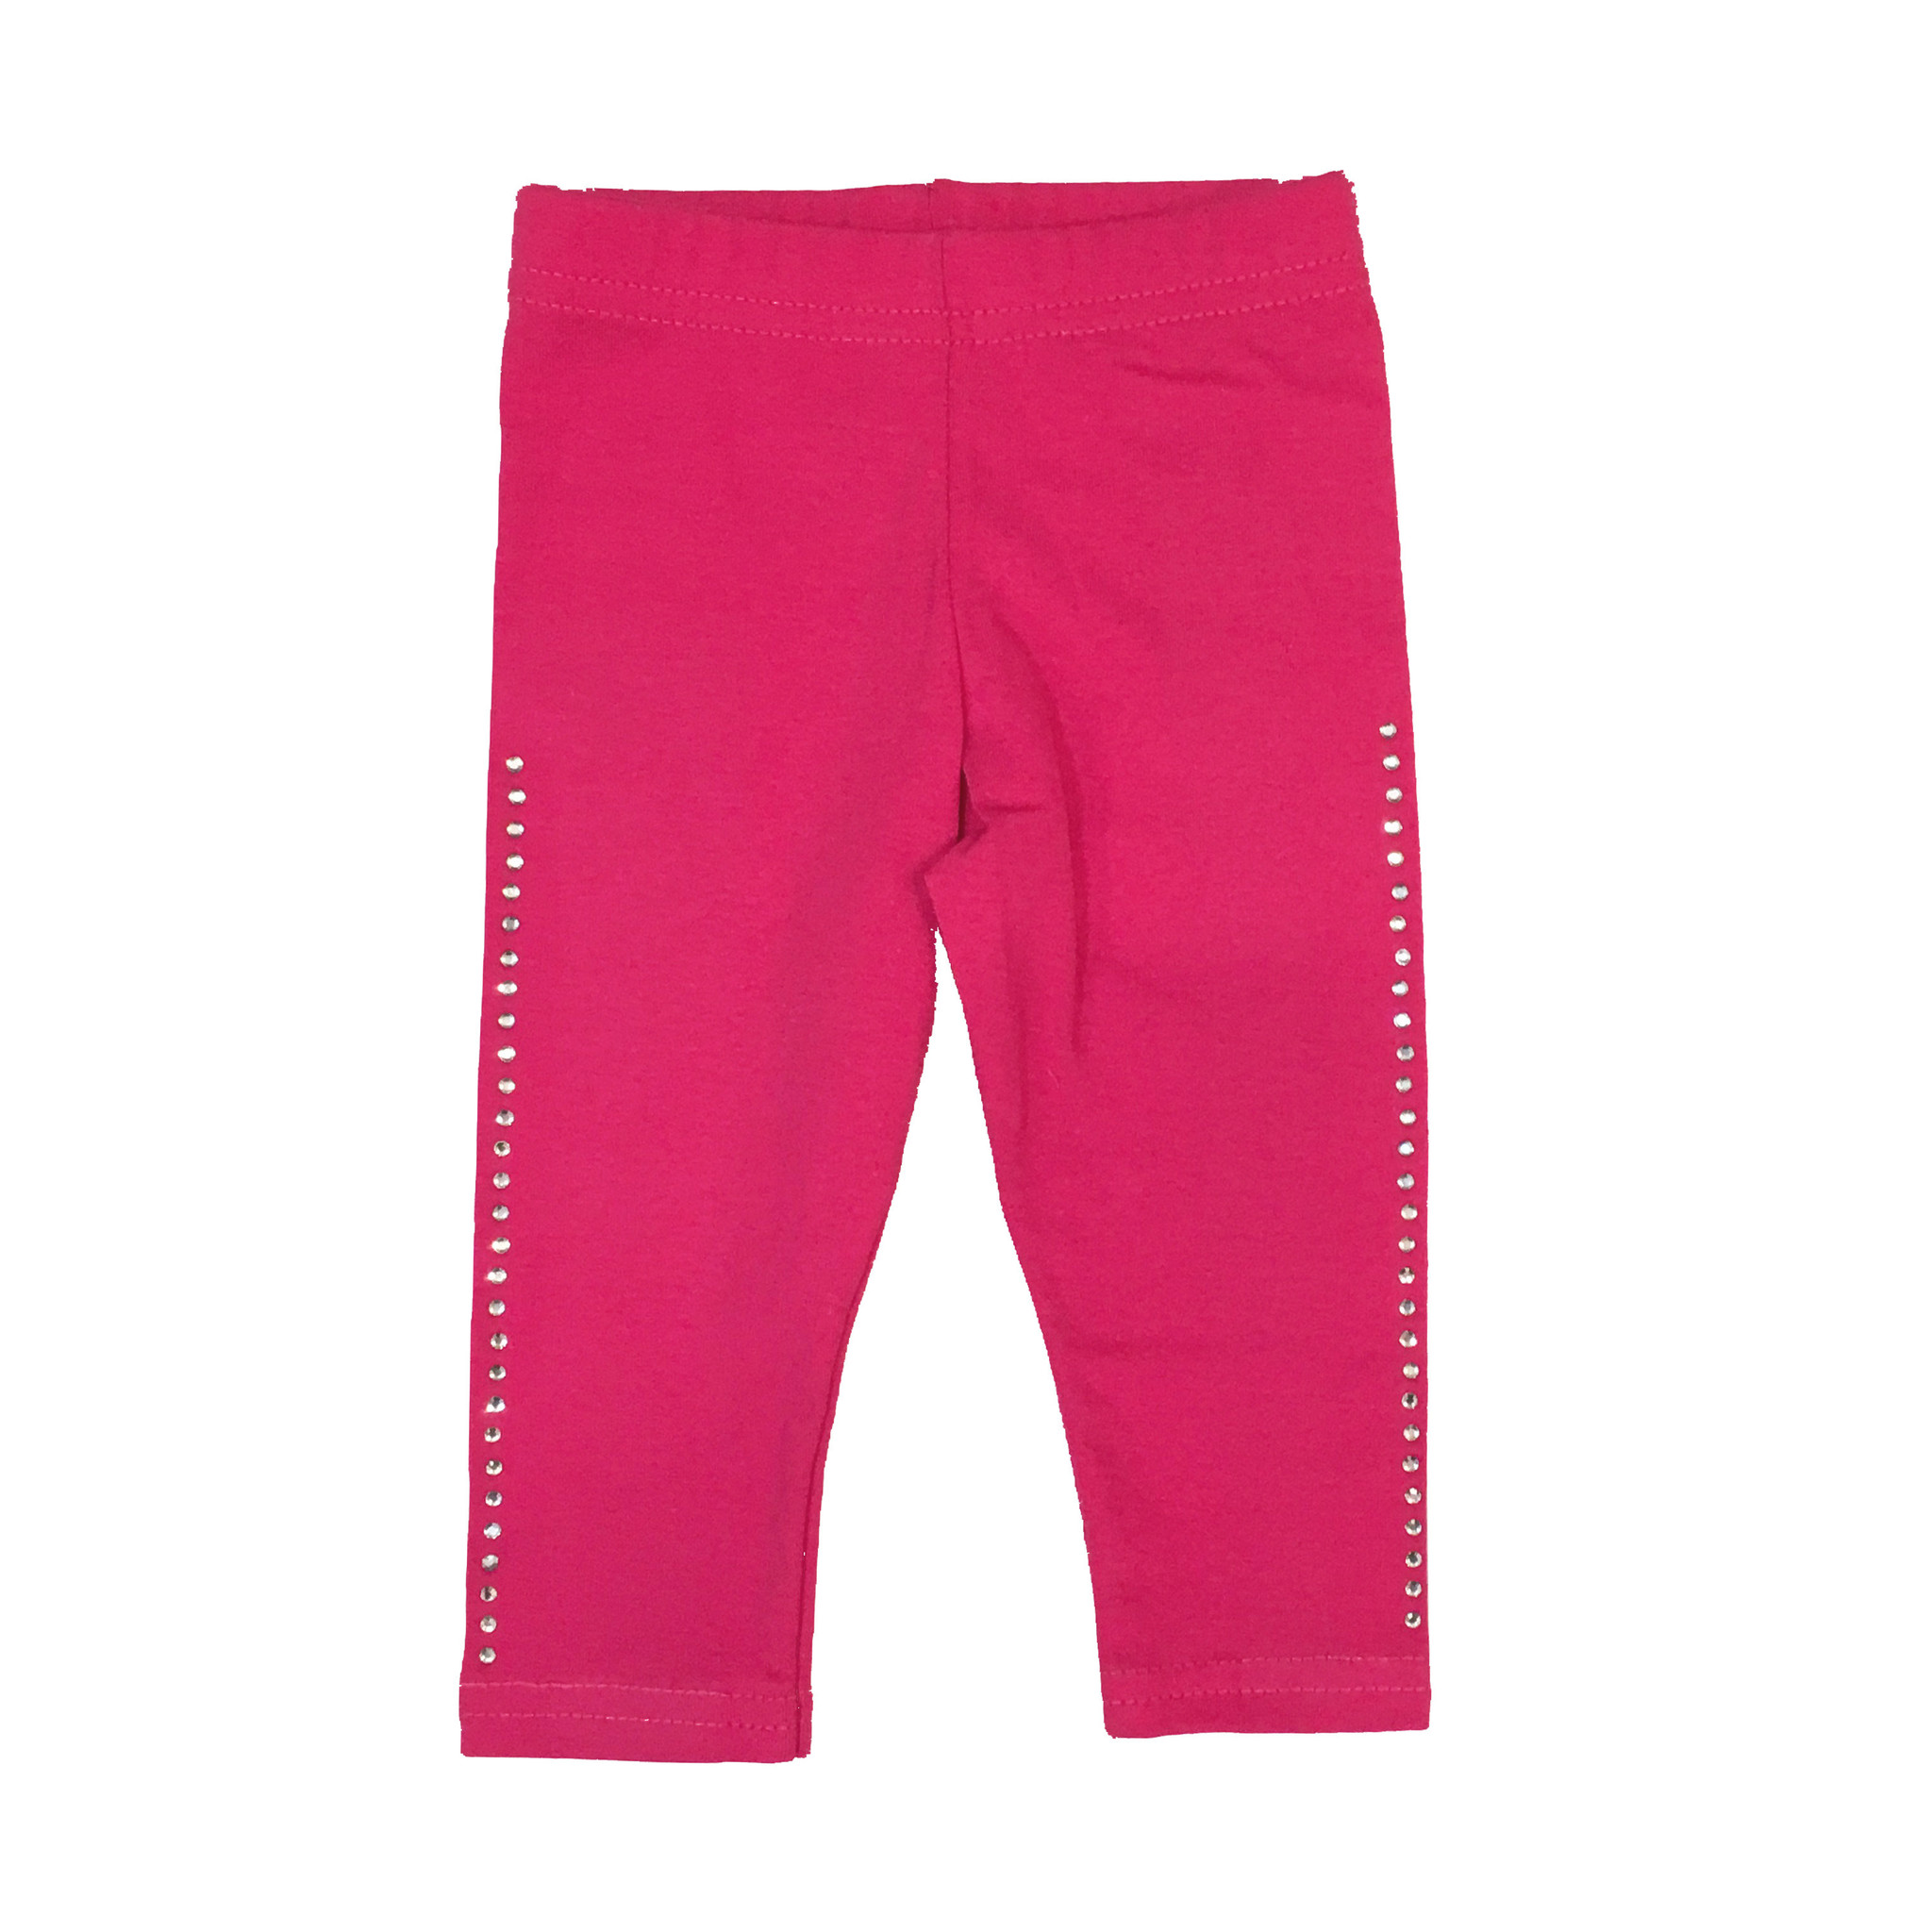 Small Change Pink Rhinestone Leggings